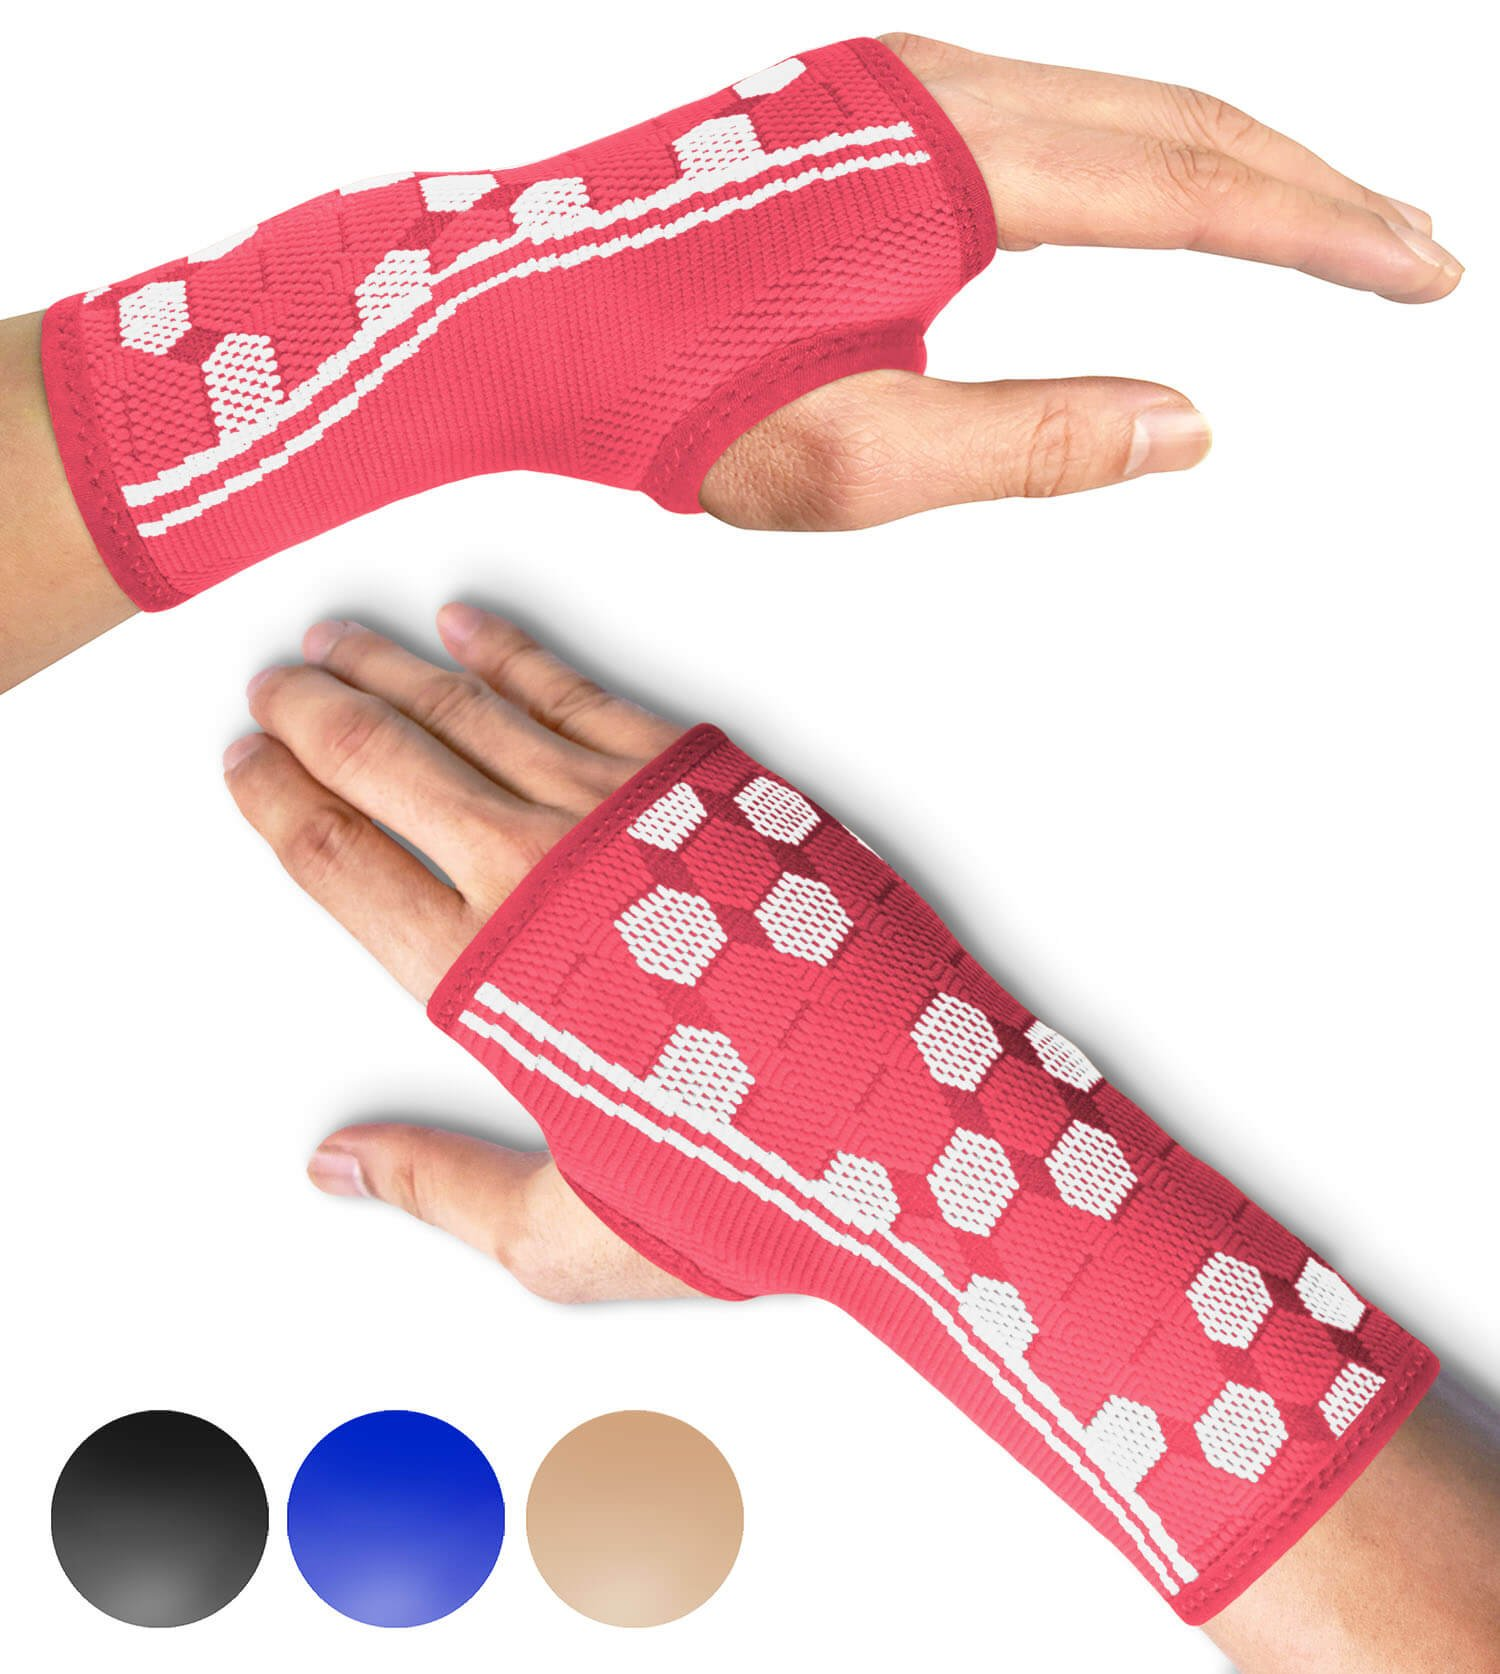 Sparthos Wrist Support Sleeves (Pair) – Medical Compression for Carpal Tunnel and Wrist Pain Relief – Wrist Brace for Men and Women (Medium, Flamingo Pink)